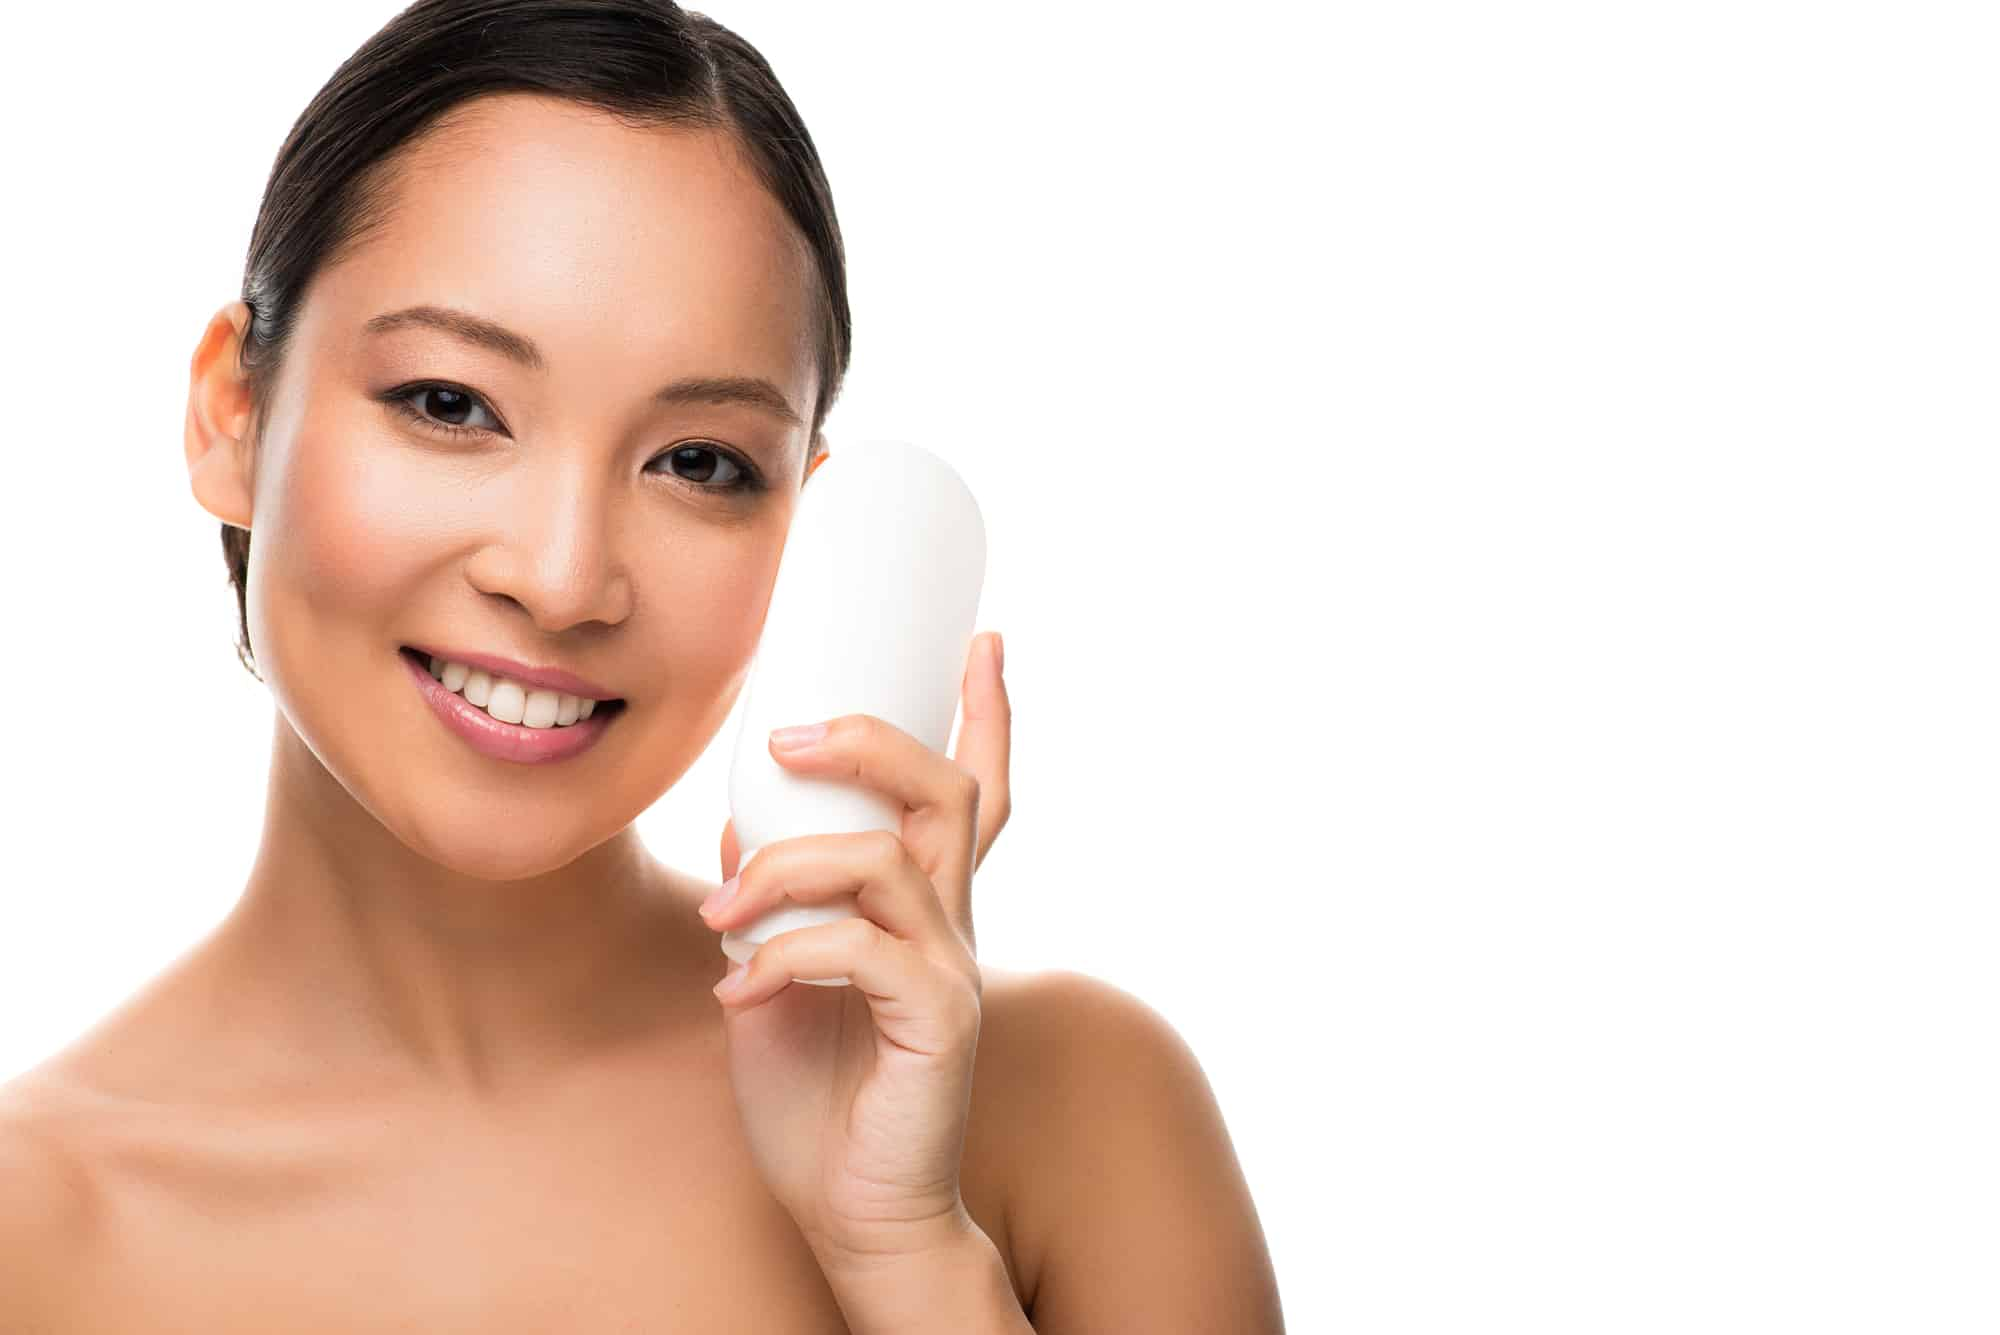 beautiful asian woman holding up bottle of lotion